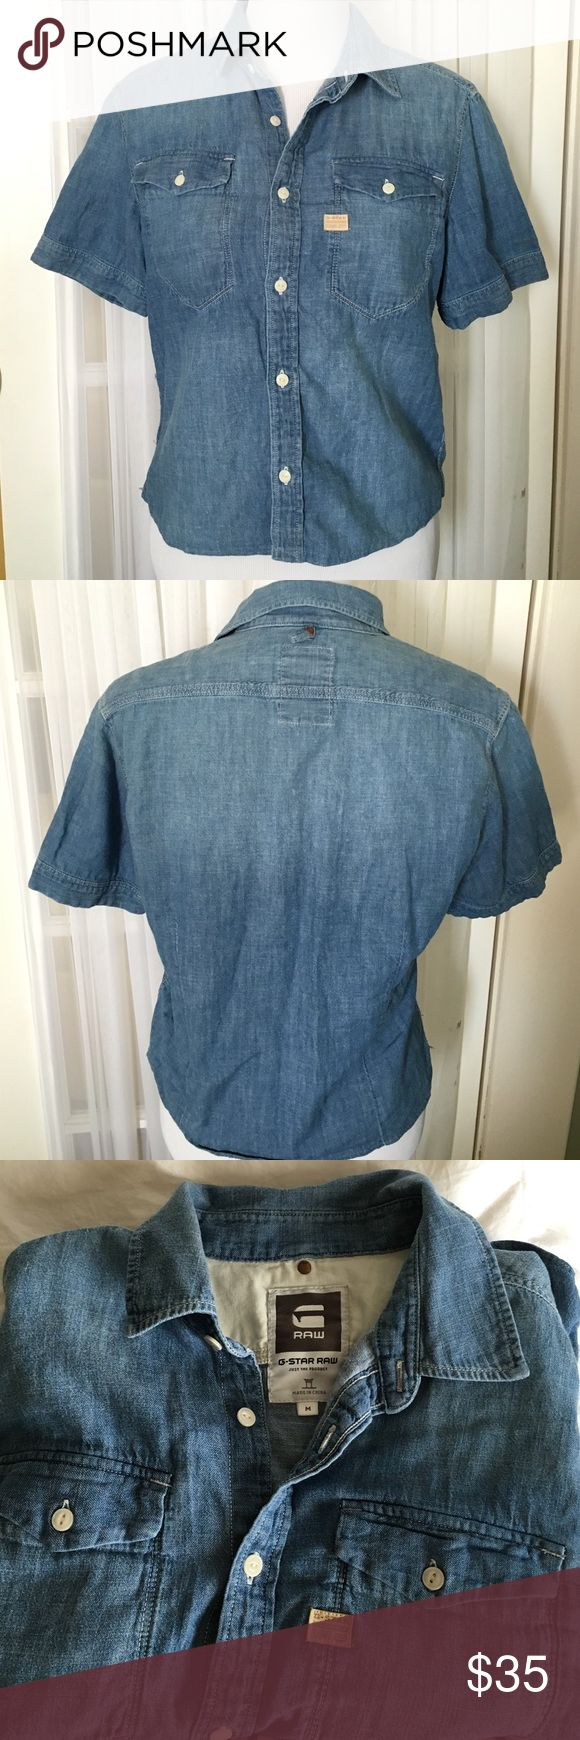 G-Star Raw Denim Shirt EUC Medium weight short sleeve button down denim shirt can wear as is or a tank or t shirt under. Wear with pants shorts or skirts great versatile piece! No signs of wear in excellent condition G-Star Tops